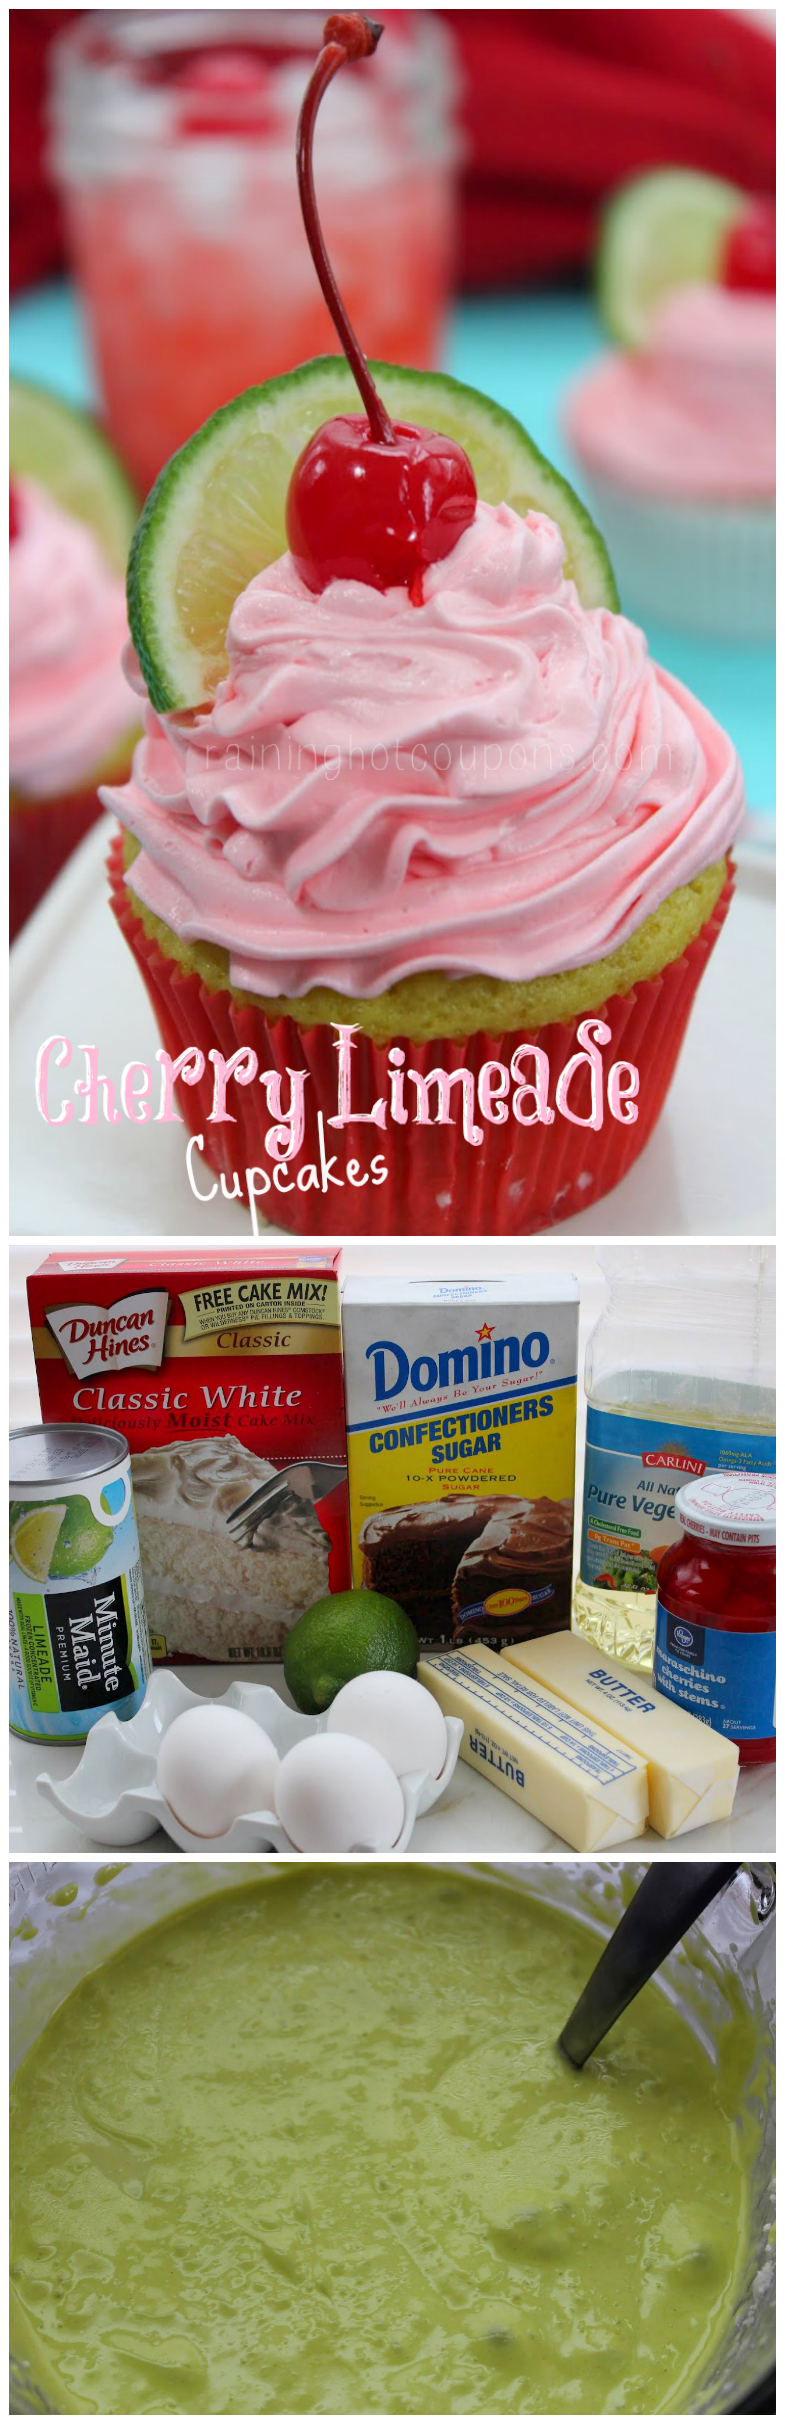 cherry limeade cupcakes collage.png